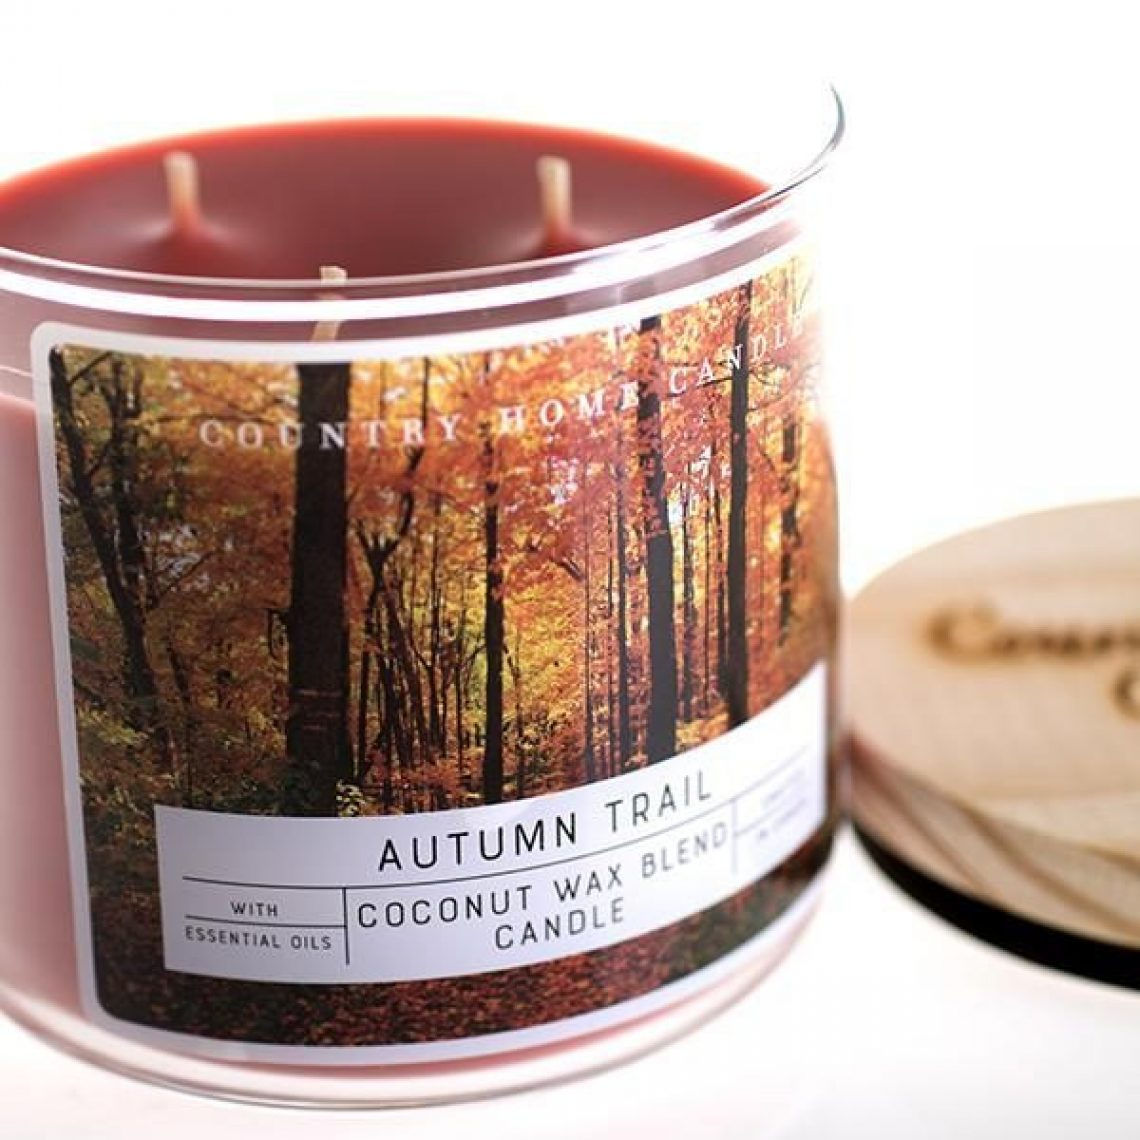 3 Wick Autumn Trail Close W Grande 553F188F 85Da 4954 95F7 57952000Dc26 2000X